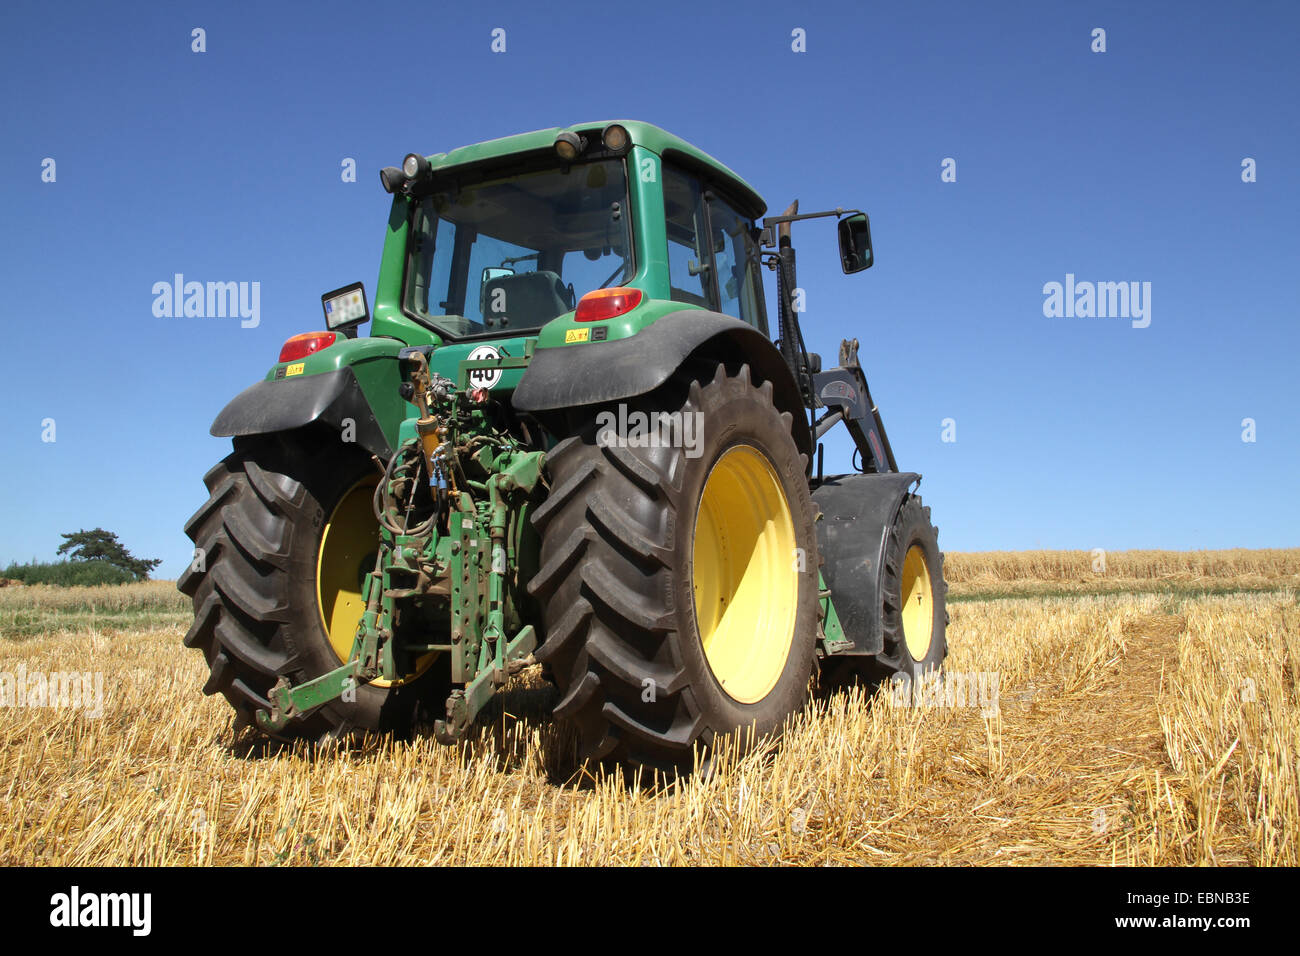 tractor on stubble field, Germany - Stock Image